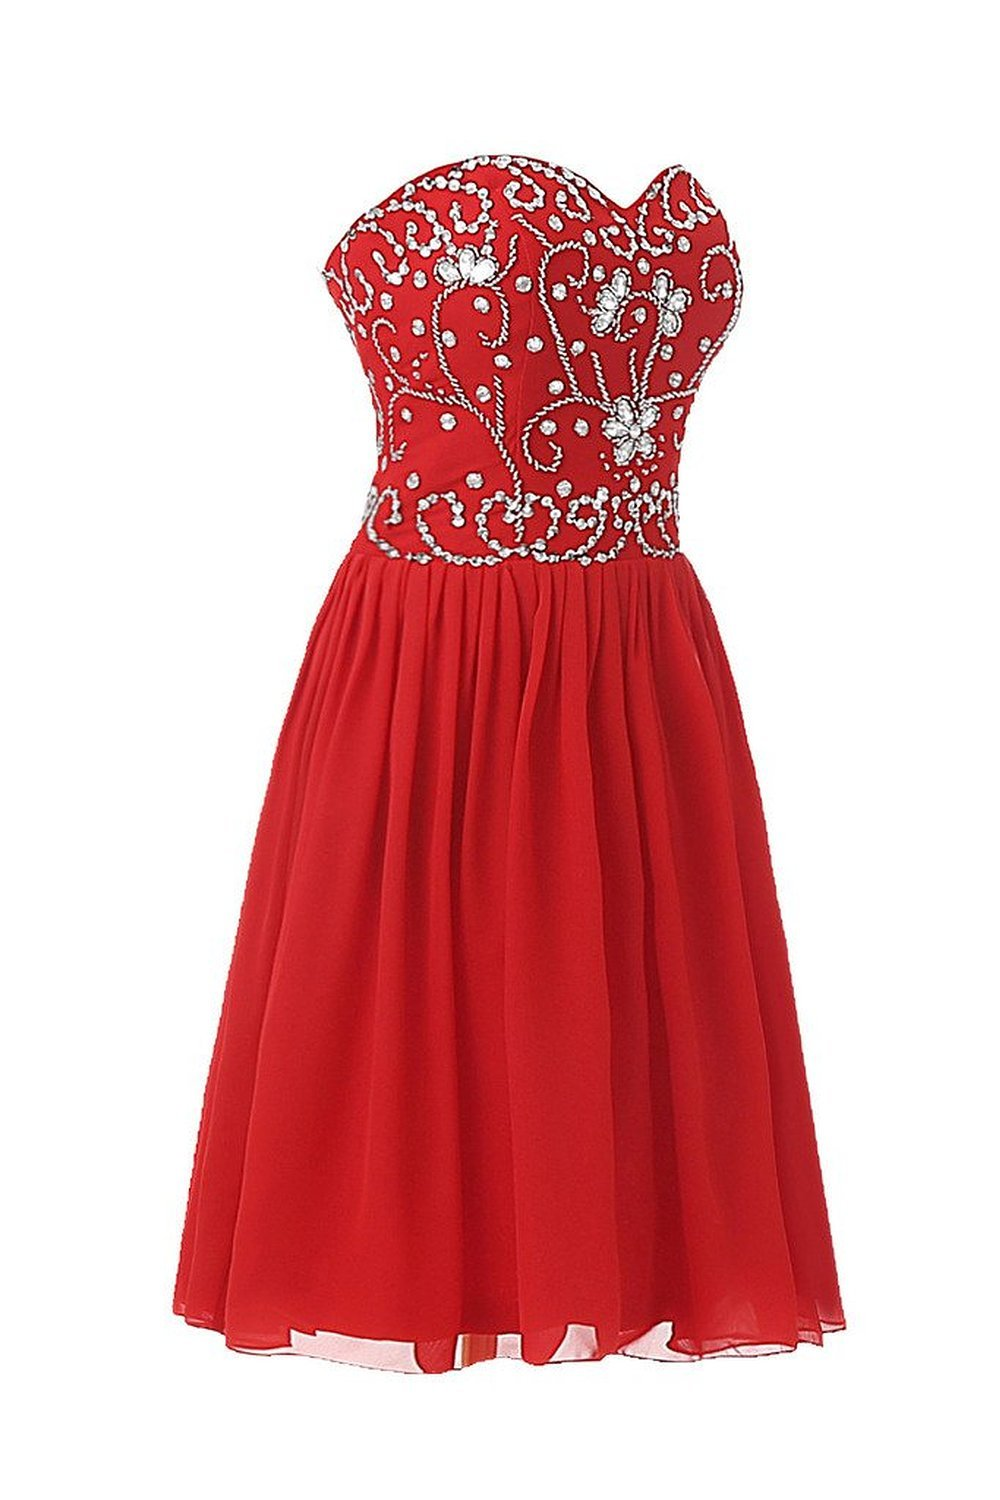 Women's Short Sweetheart Chiffon Beading Prom Dresses Homecoming Party Dress